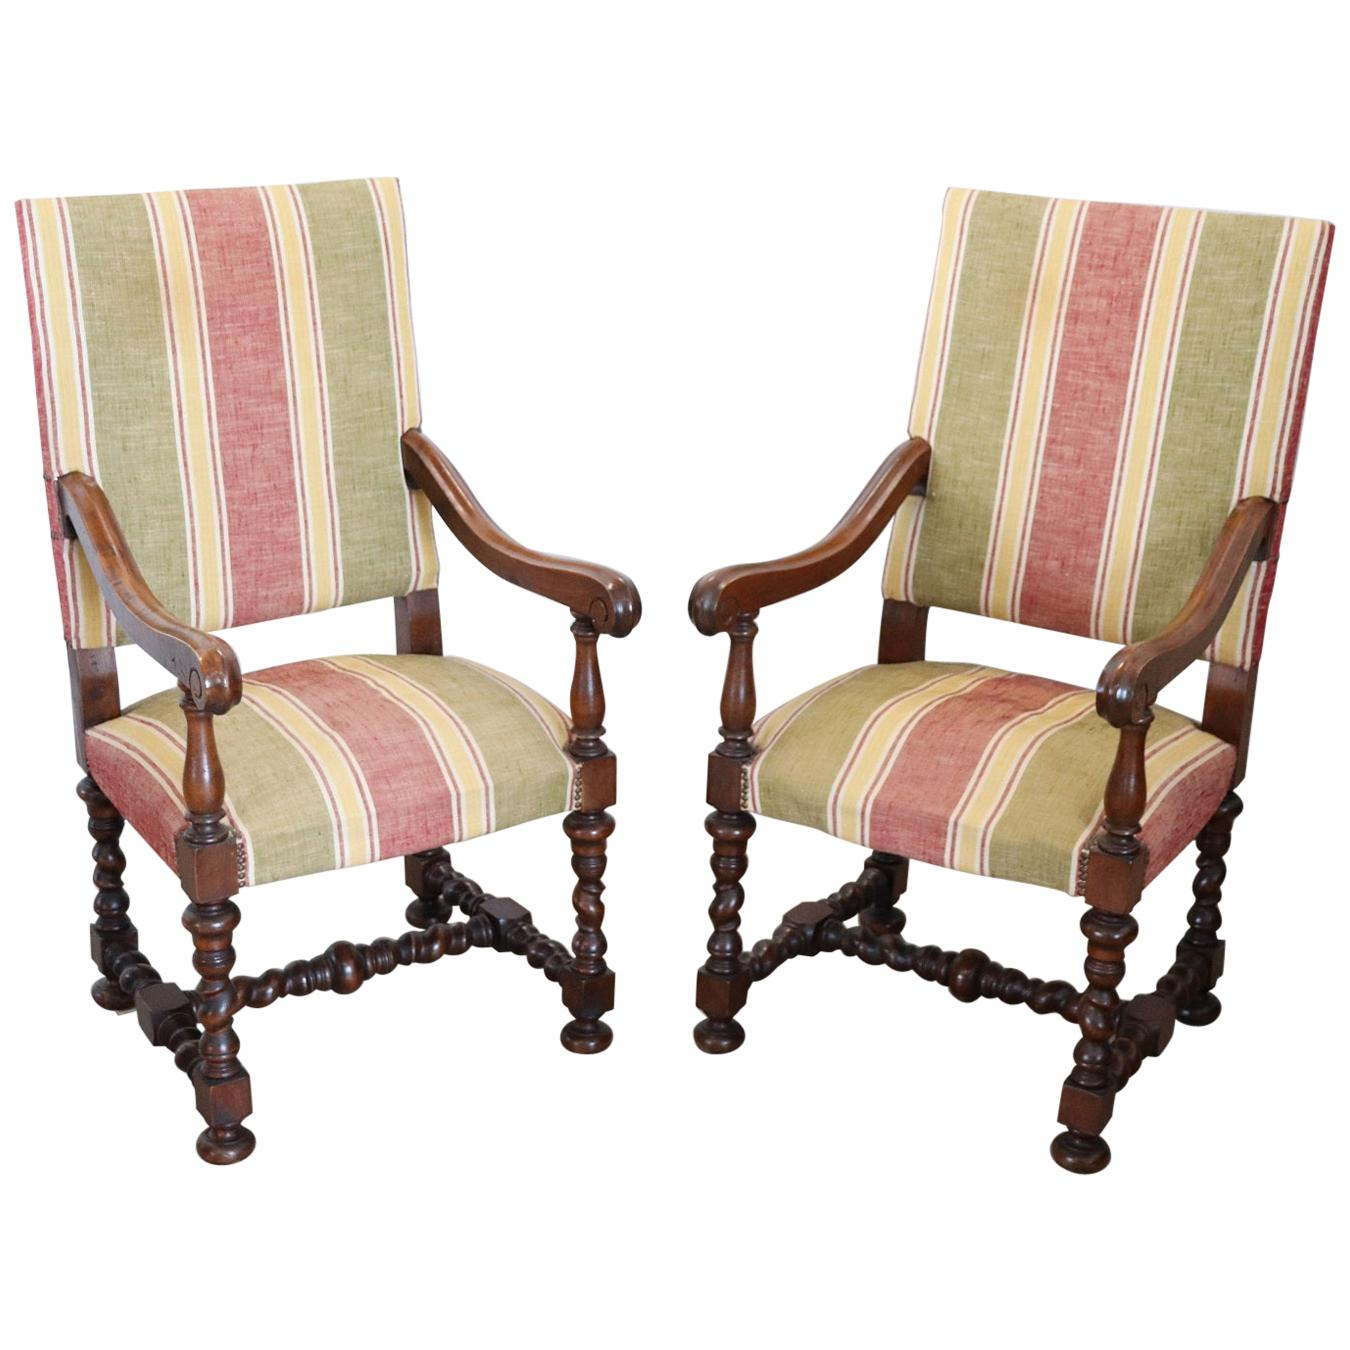 19th Century Italian Louis XIV Style Turned Walnut Pair of Armchairs